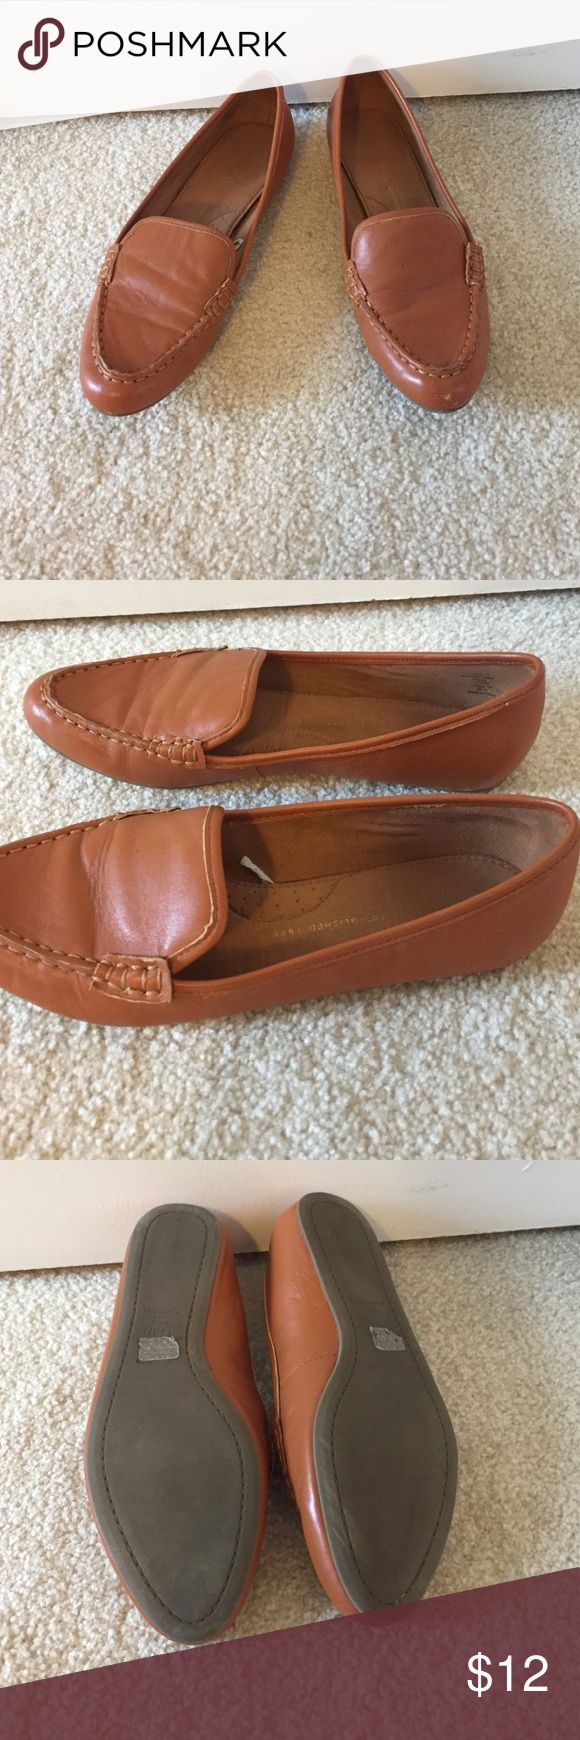 Gap tan loafers Perfect tan loafer for fall! Left toe has small wear spot as shown in the last picture. True to size GAP Shoes Flats & Loafers